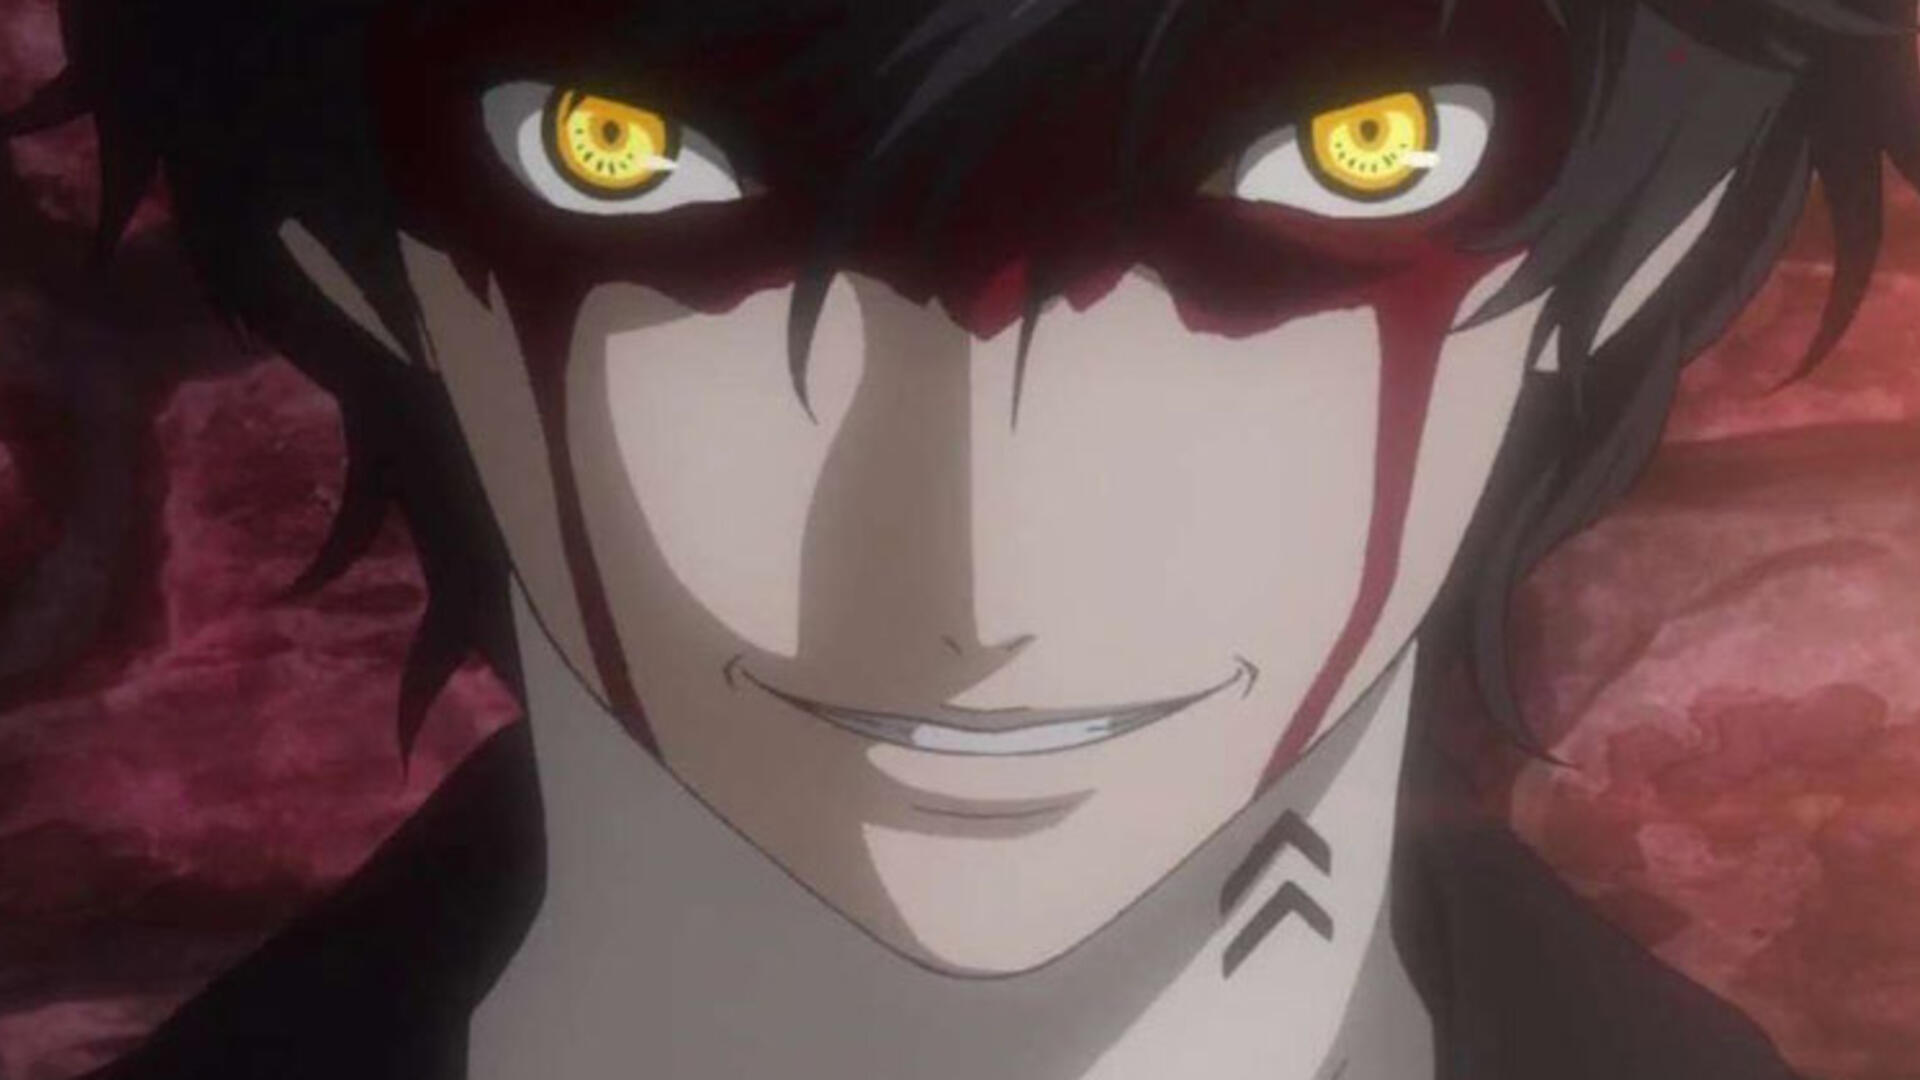 Persona 5 and Games as the Voice of Social Unrest